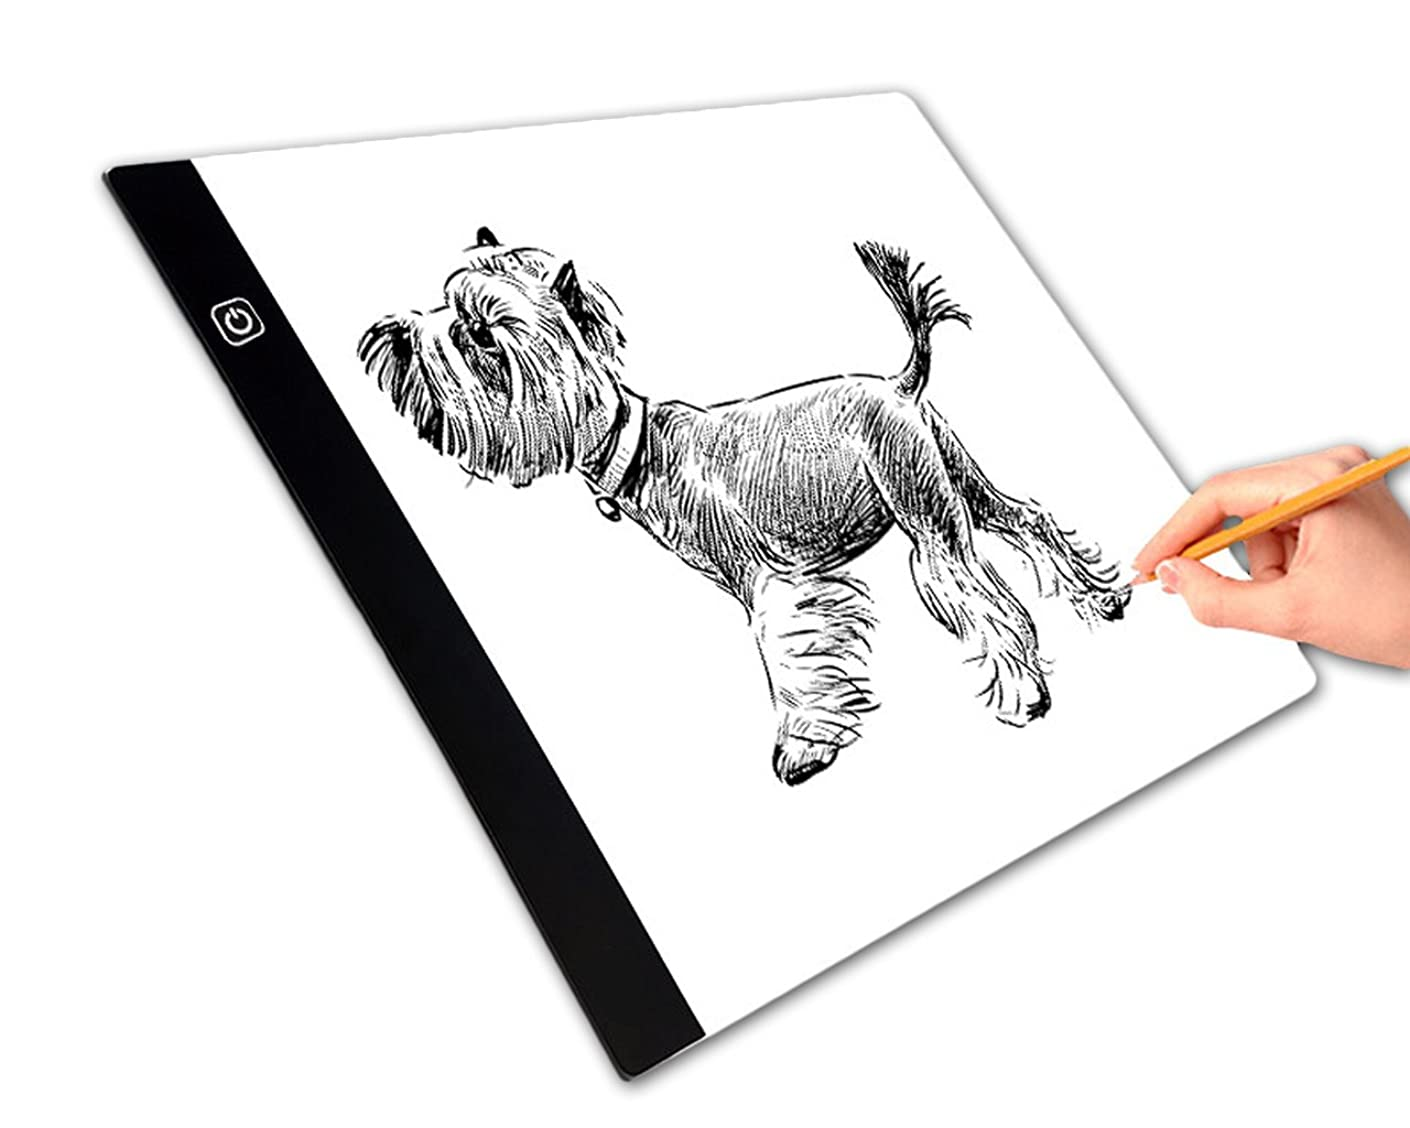 Tracing Light Box,Portable LED Drawing Pad A4 Ultra-thin USB Adjustable Luminous for Artists,Drawing, Sketching, Animation